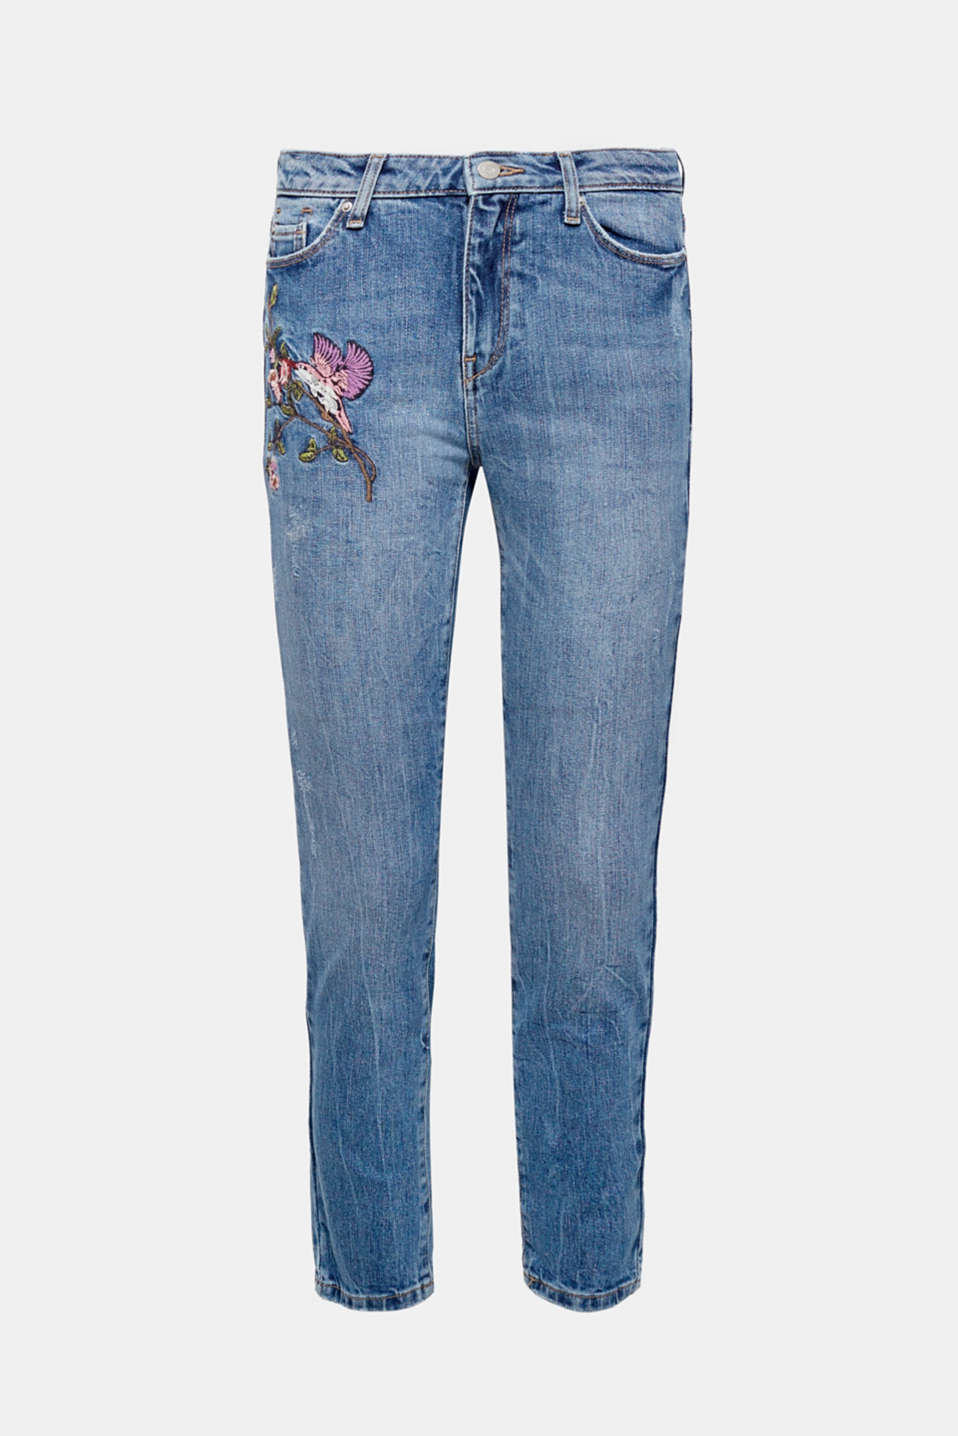 With a pre-washed and distressed finish + floral embroidery: five-pocket jeans made of a comfy and stretchy blended cotton.